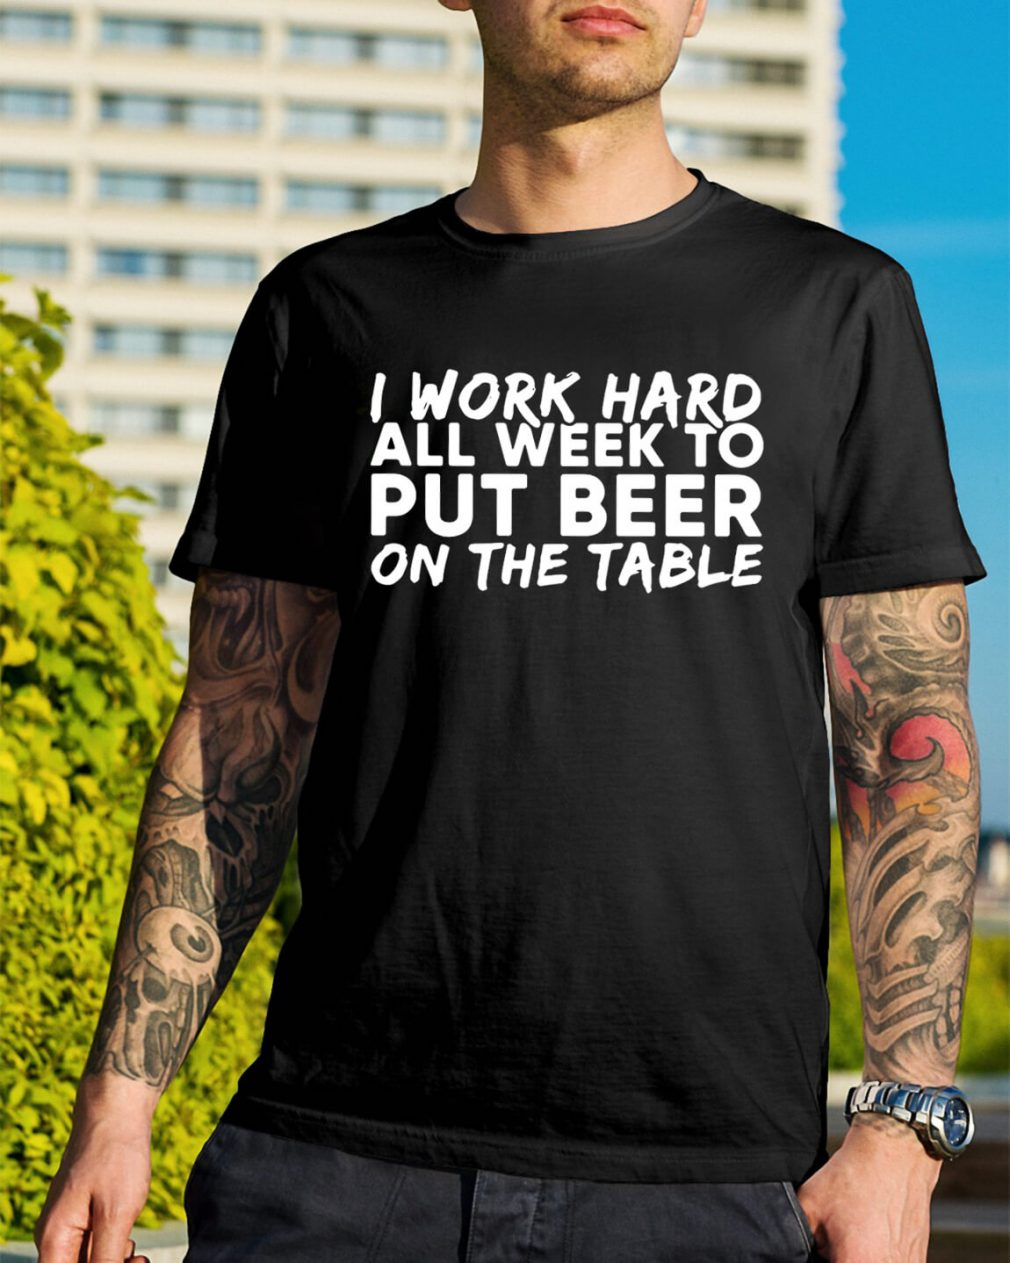 I work hard all week to put beer on the table shirt